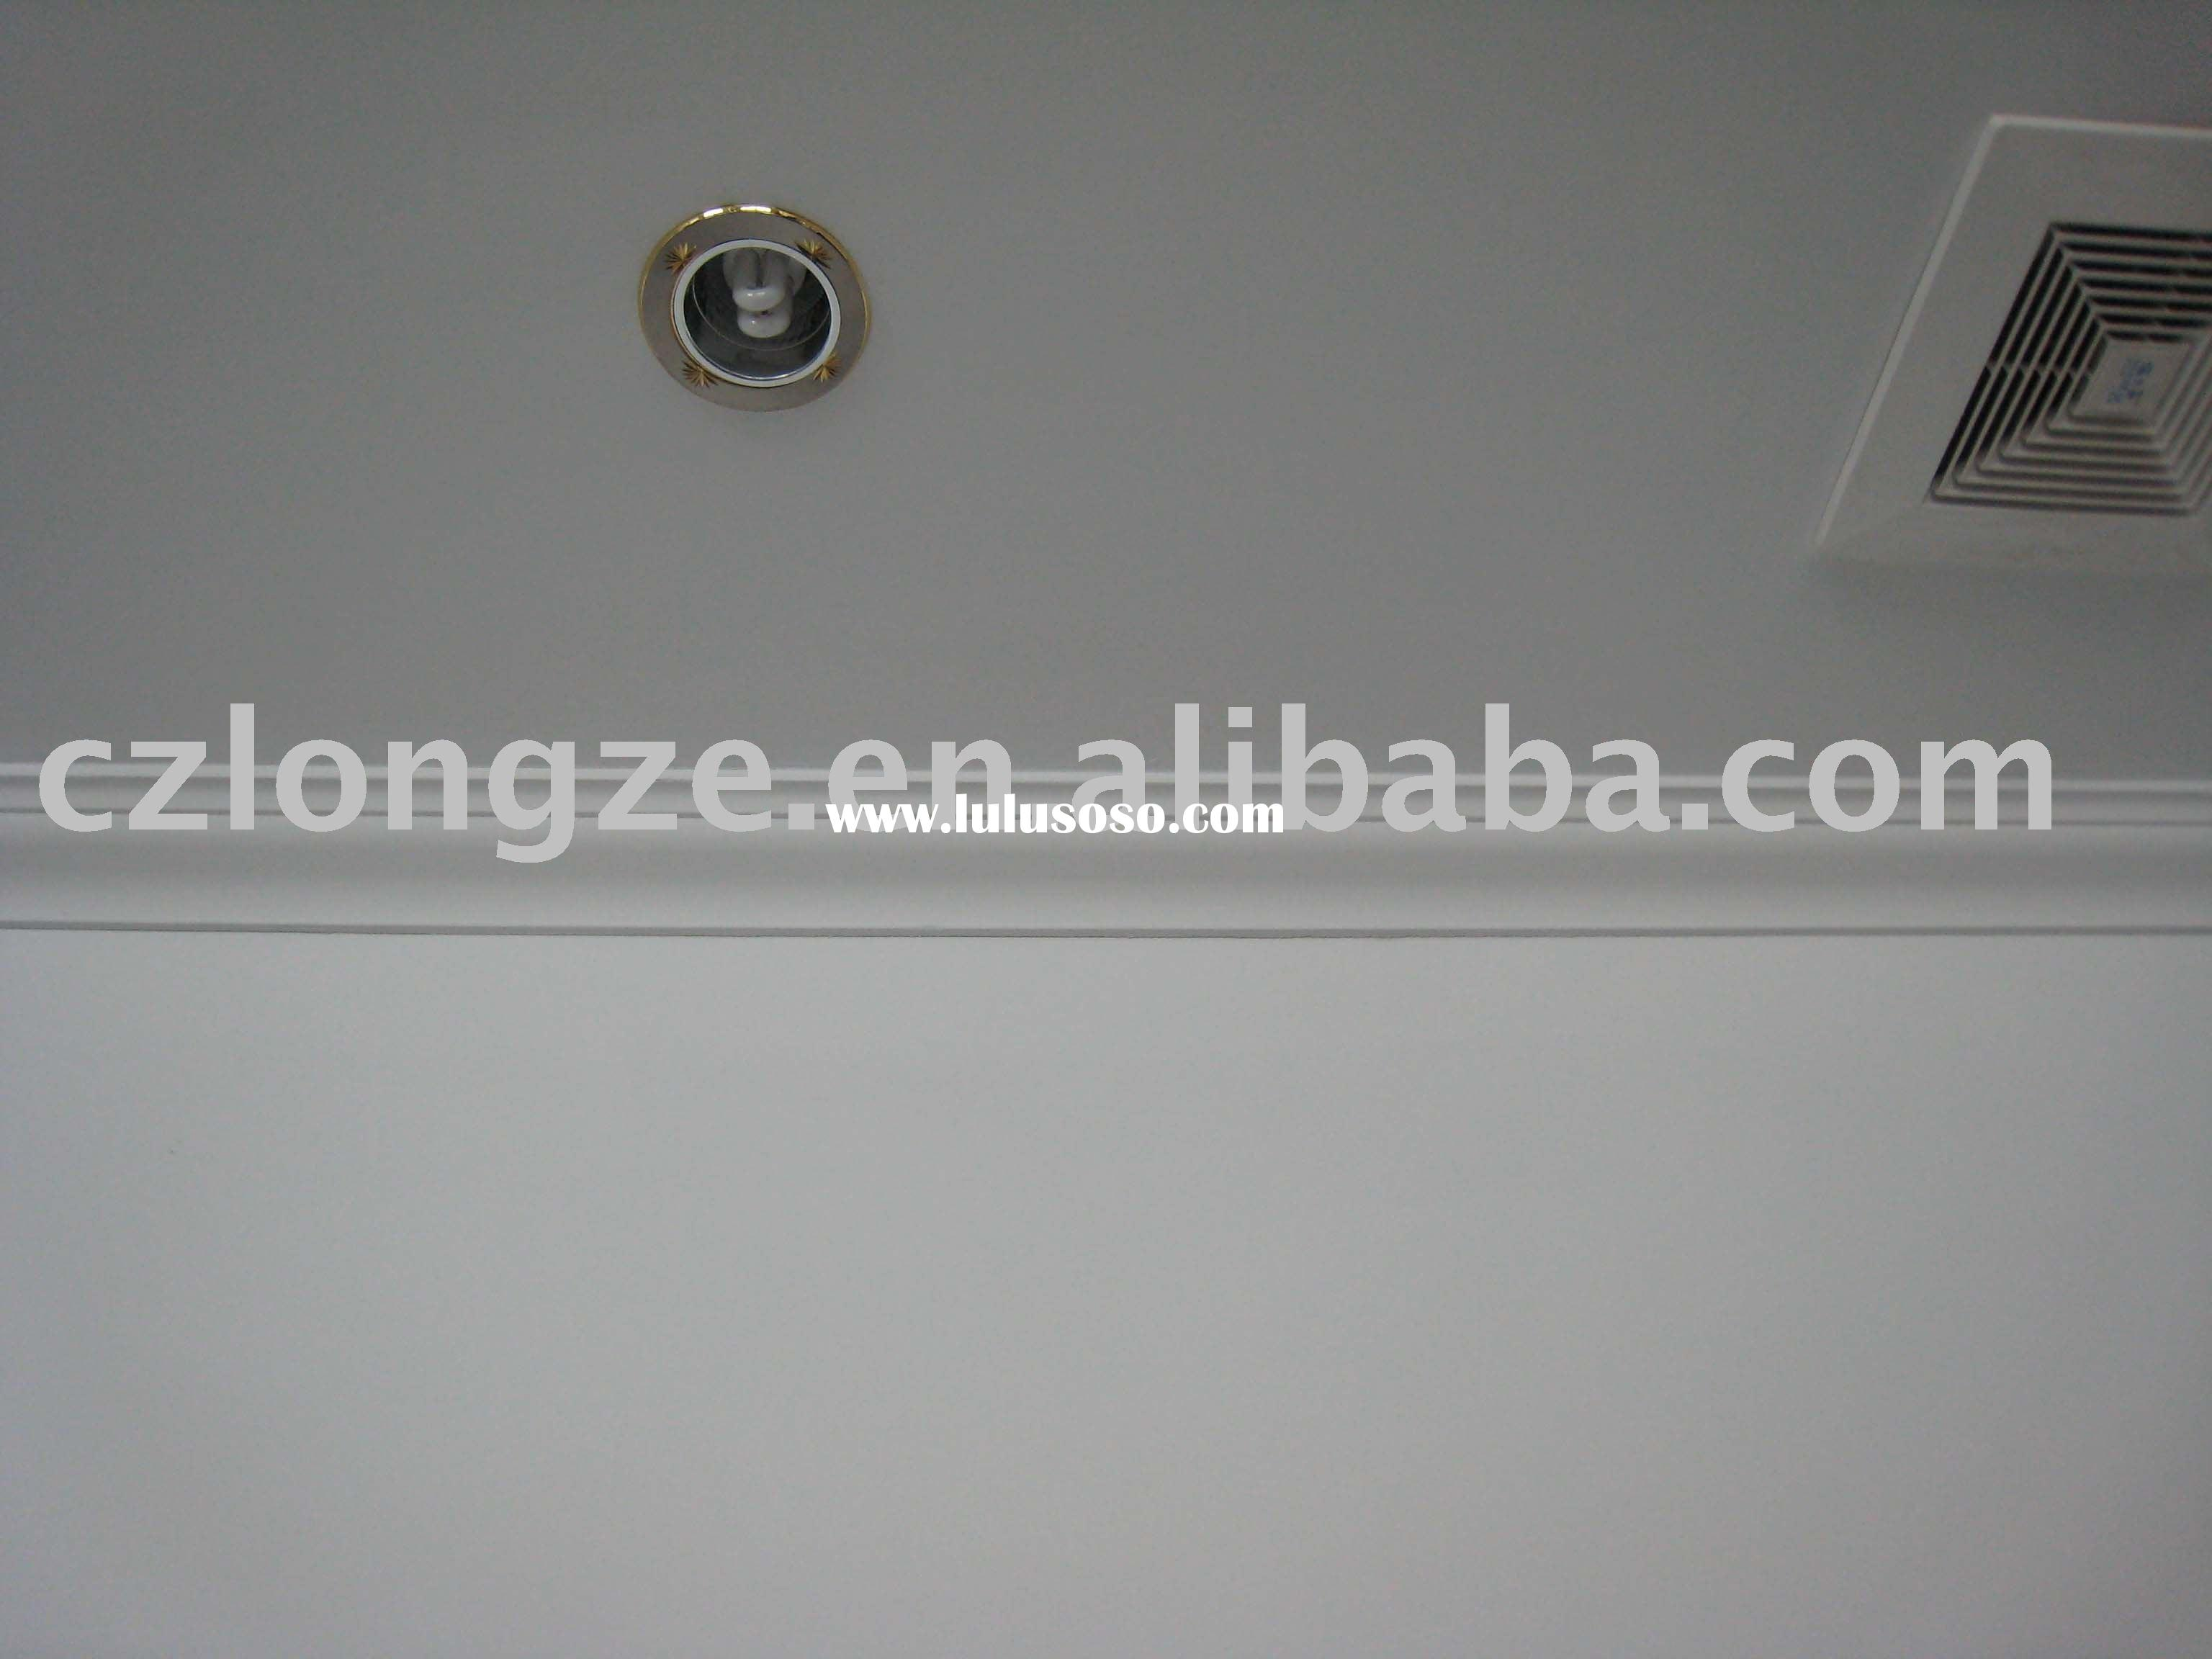 Primed paint moulding used for Baseboard,Quarter Round,Door&Window Casing and Cornice/Crown etc